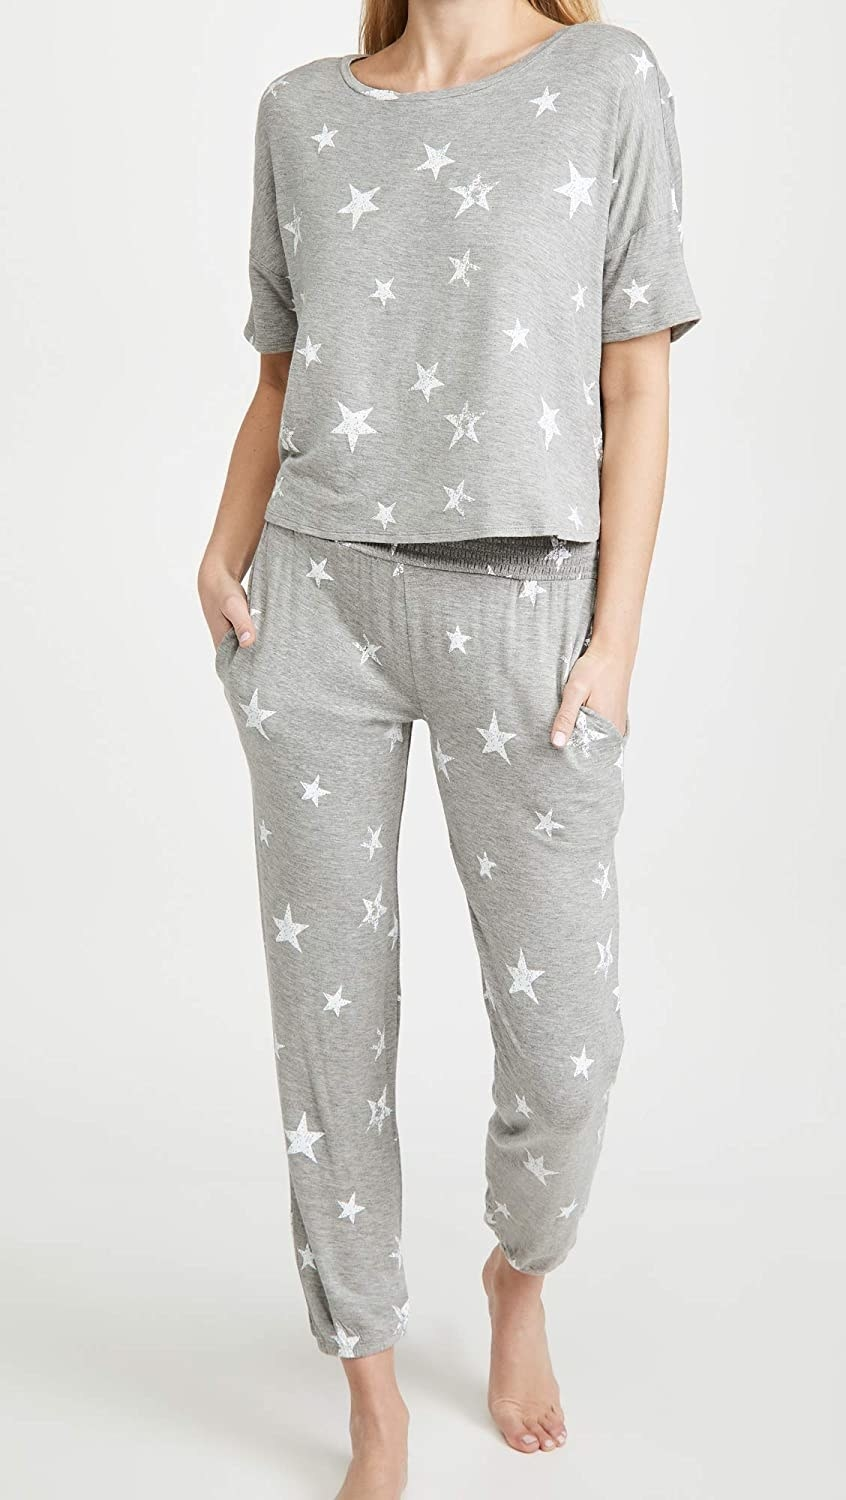 Model wearing grey set with white stars